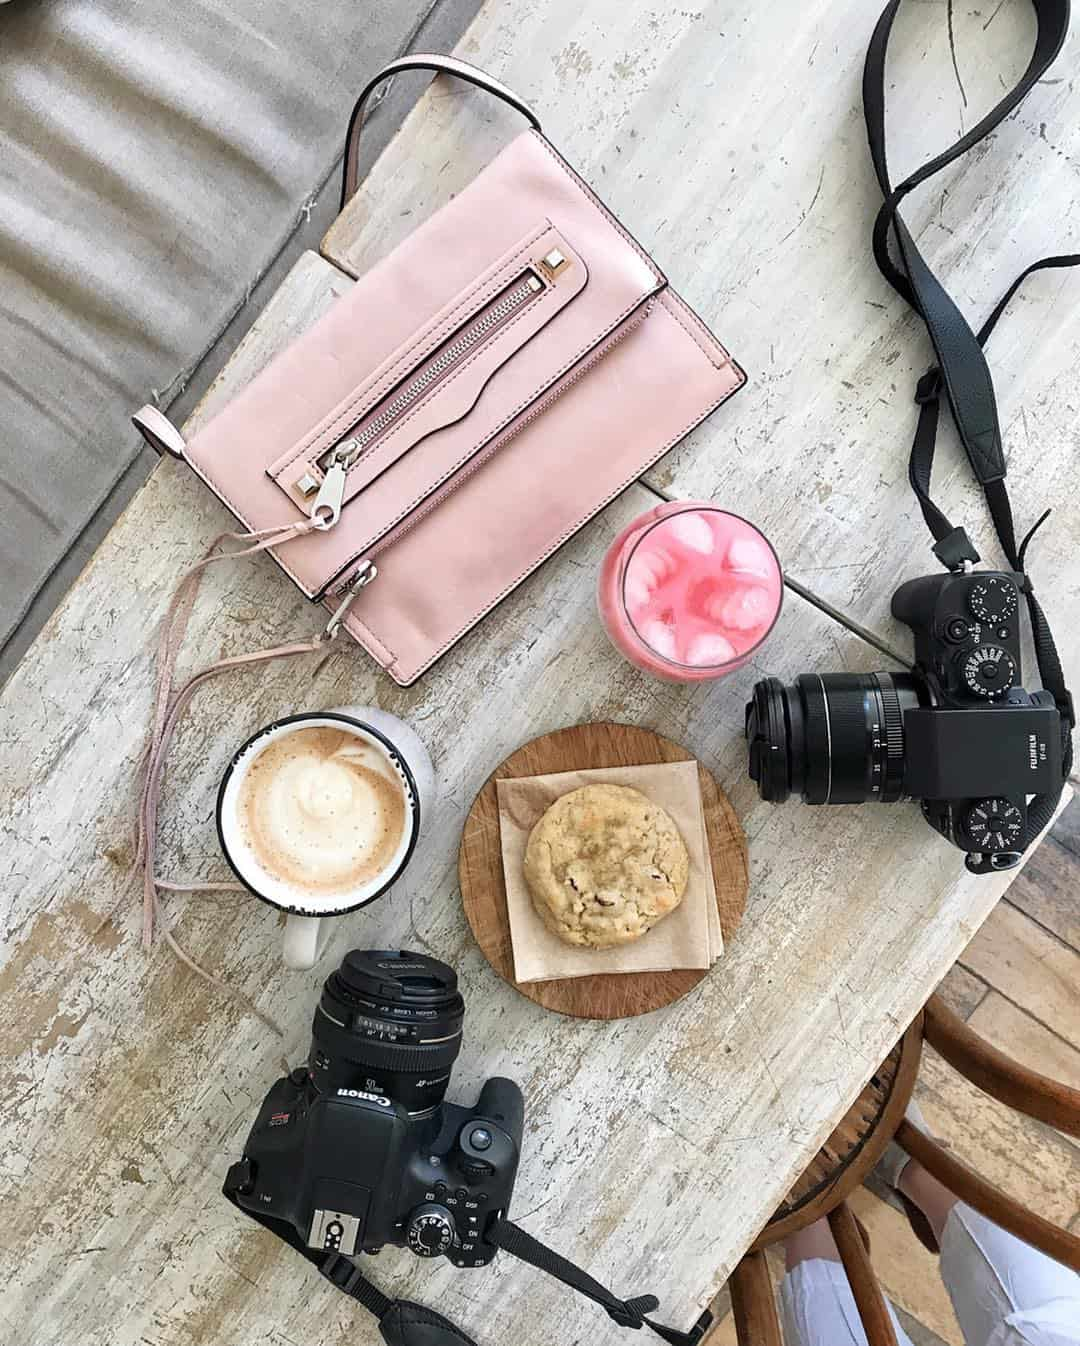 Flat lays are popular all over Instagram because they're so aesthetically-pleasing. Here are tips on how to take better flat lay photography!